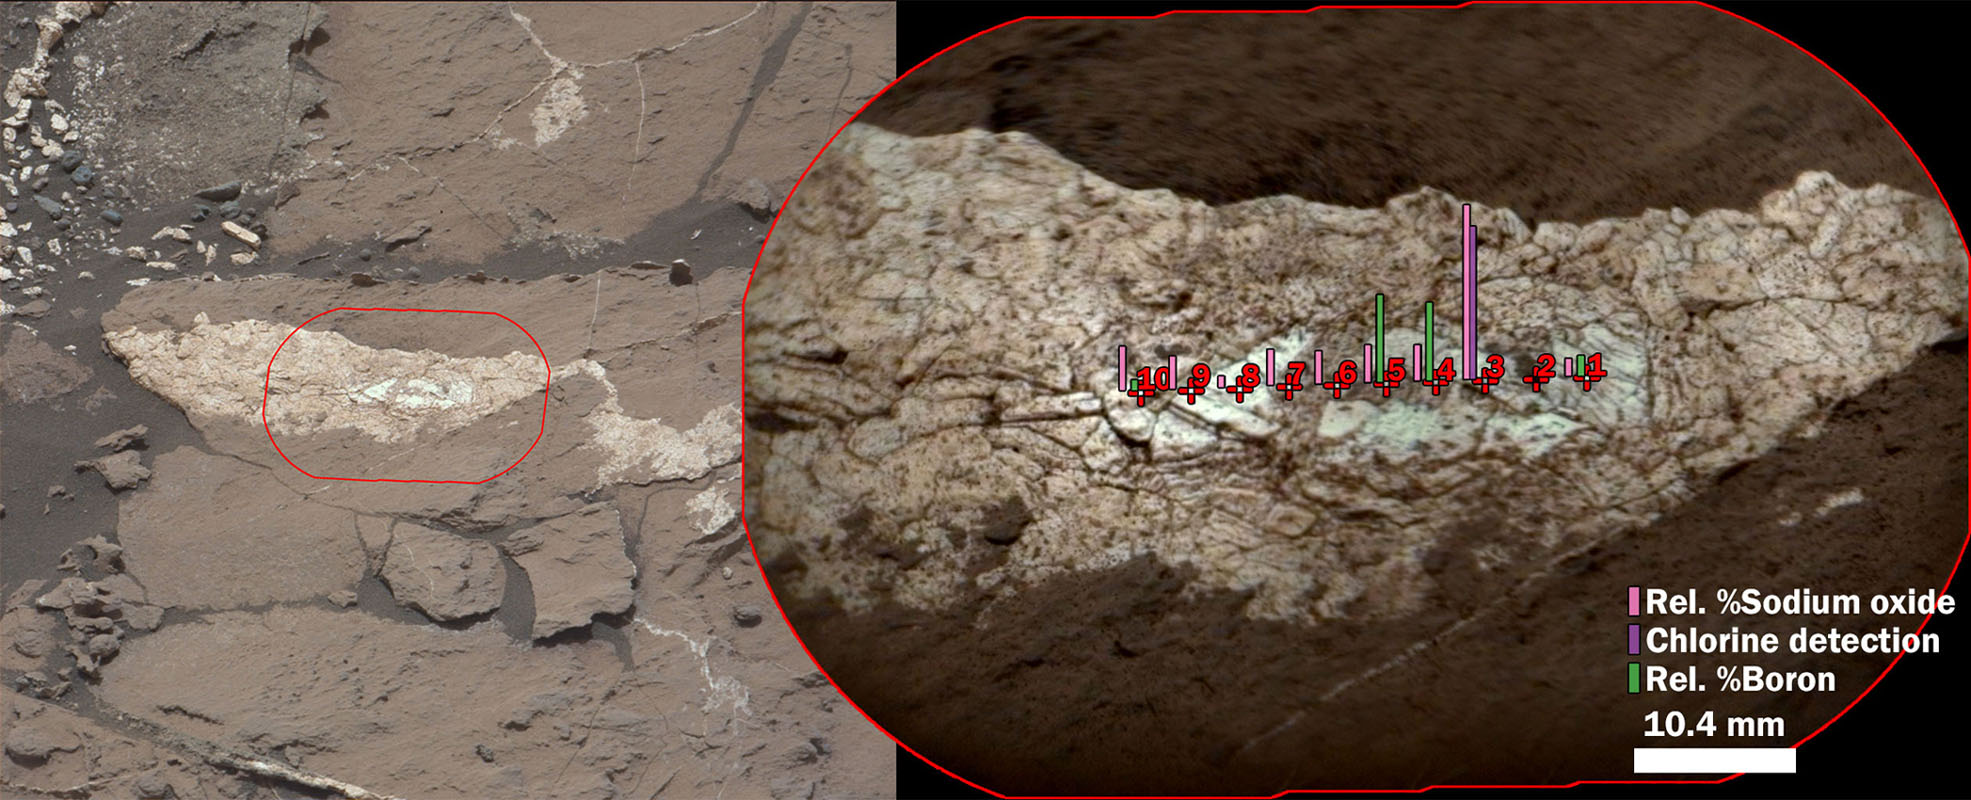 Examination of a calcium sulfate vein called 'Diyogha' by the Chemical and ChemCam instrument on NASA's Curiosity Mars rover found boron, sodium and chlorine.